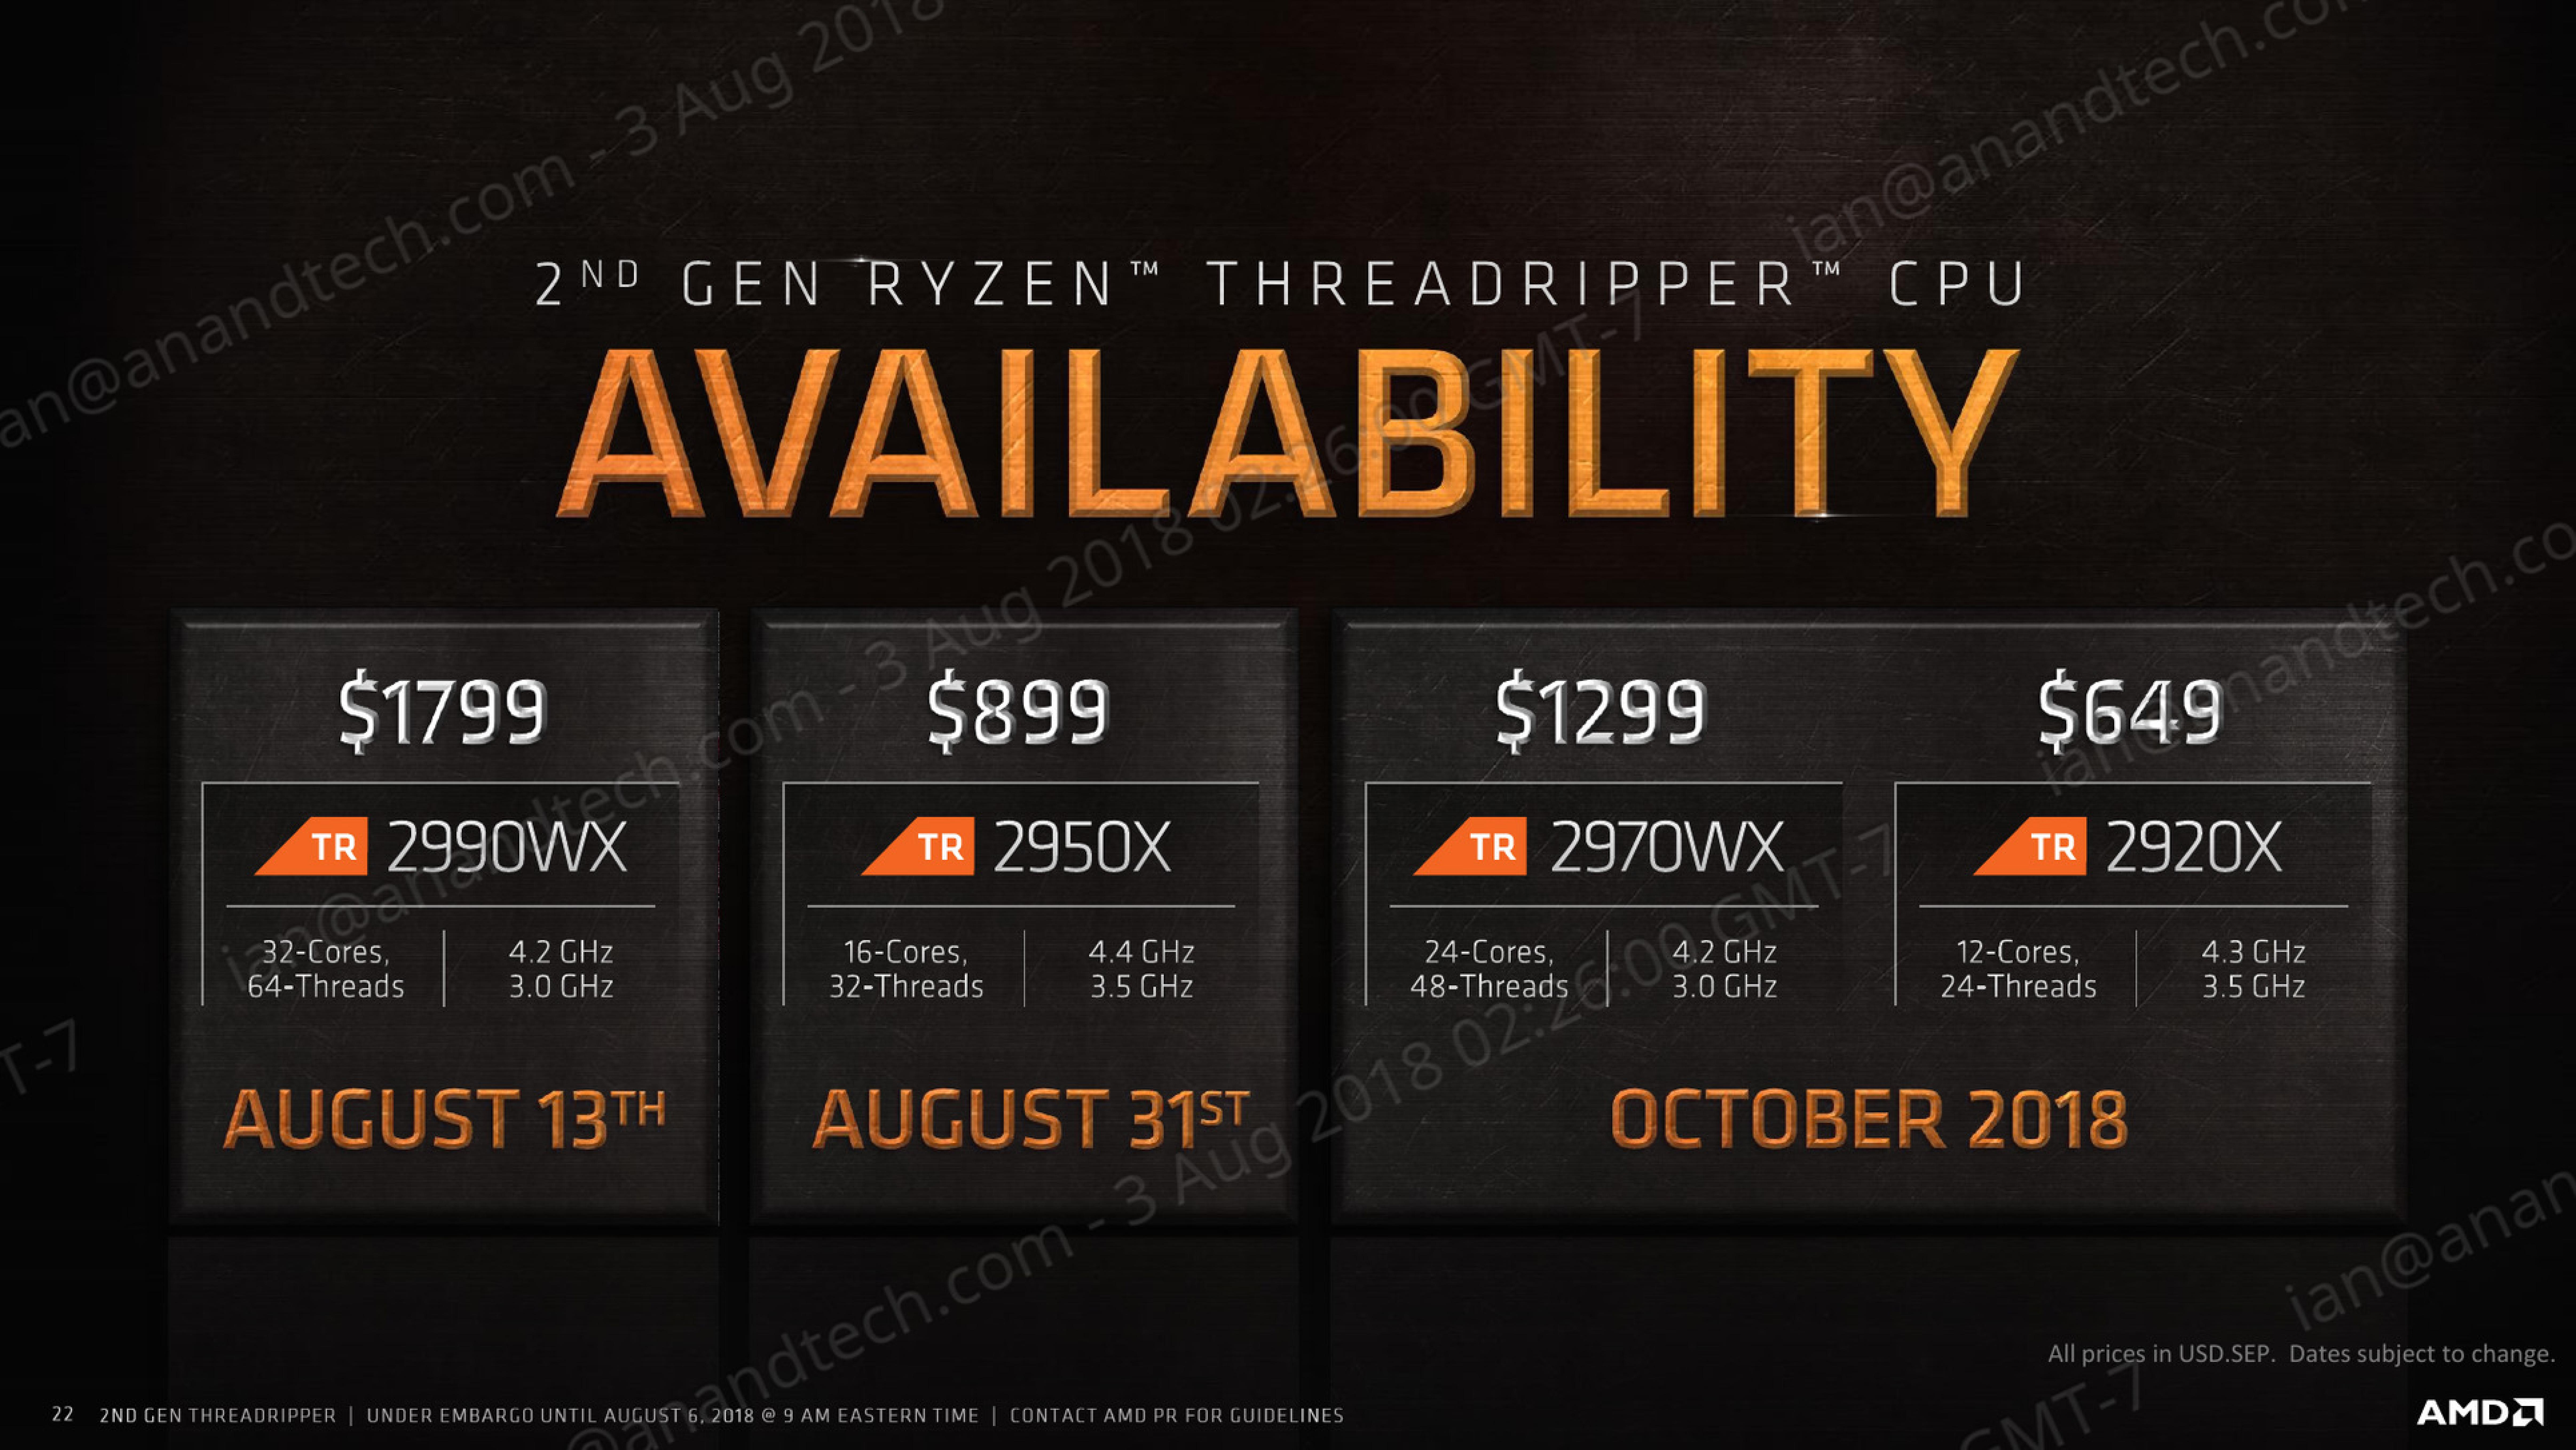 The AMD Threadripper 2990WX 32-Core and 2950X 16-Core Review